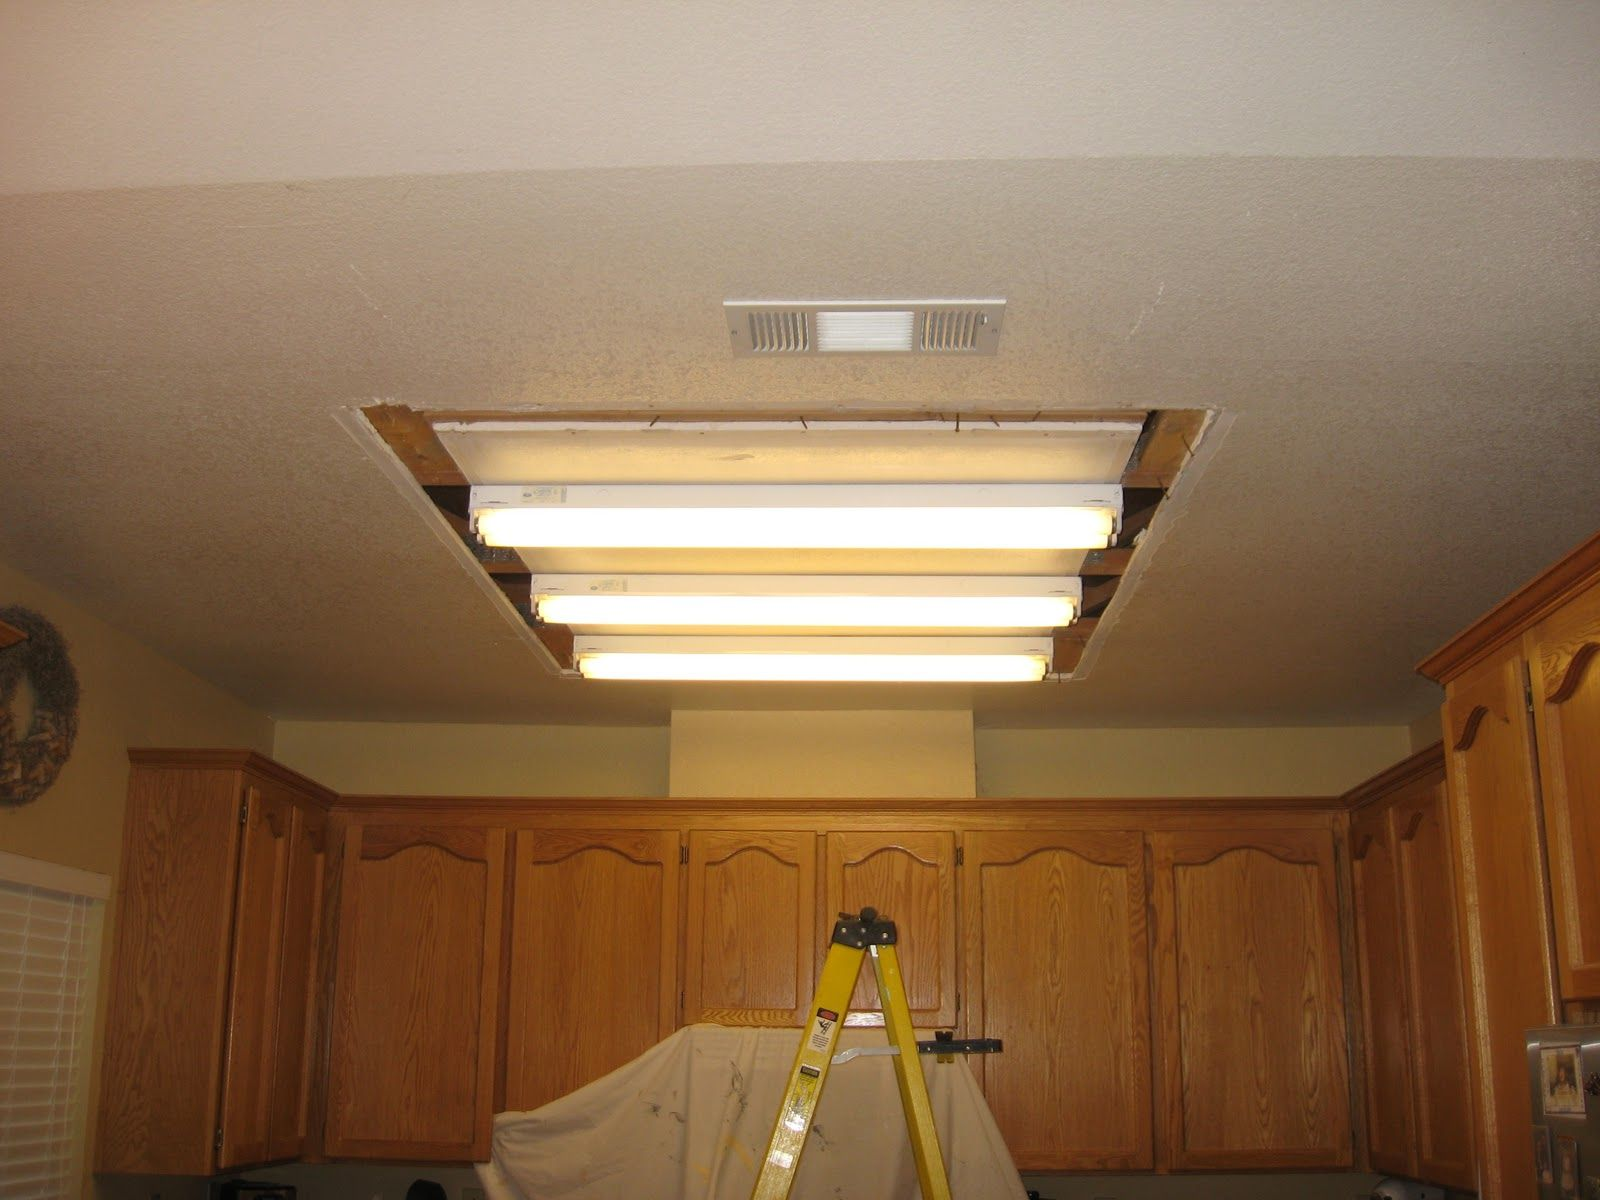 Fluorescent Kitchen Light Fixtures - top Rated Interior Paint Check ...